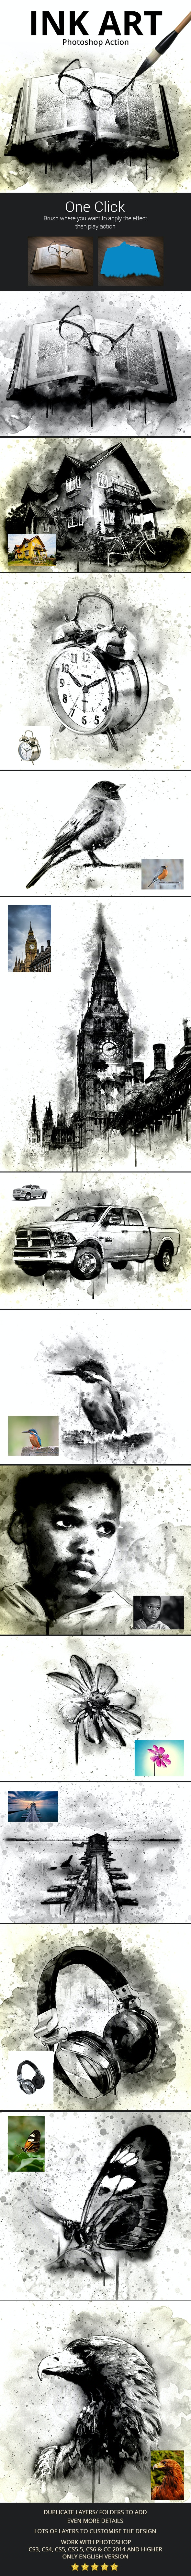 Ink Art Photoshop Action - Photo Effects Actions